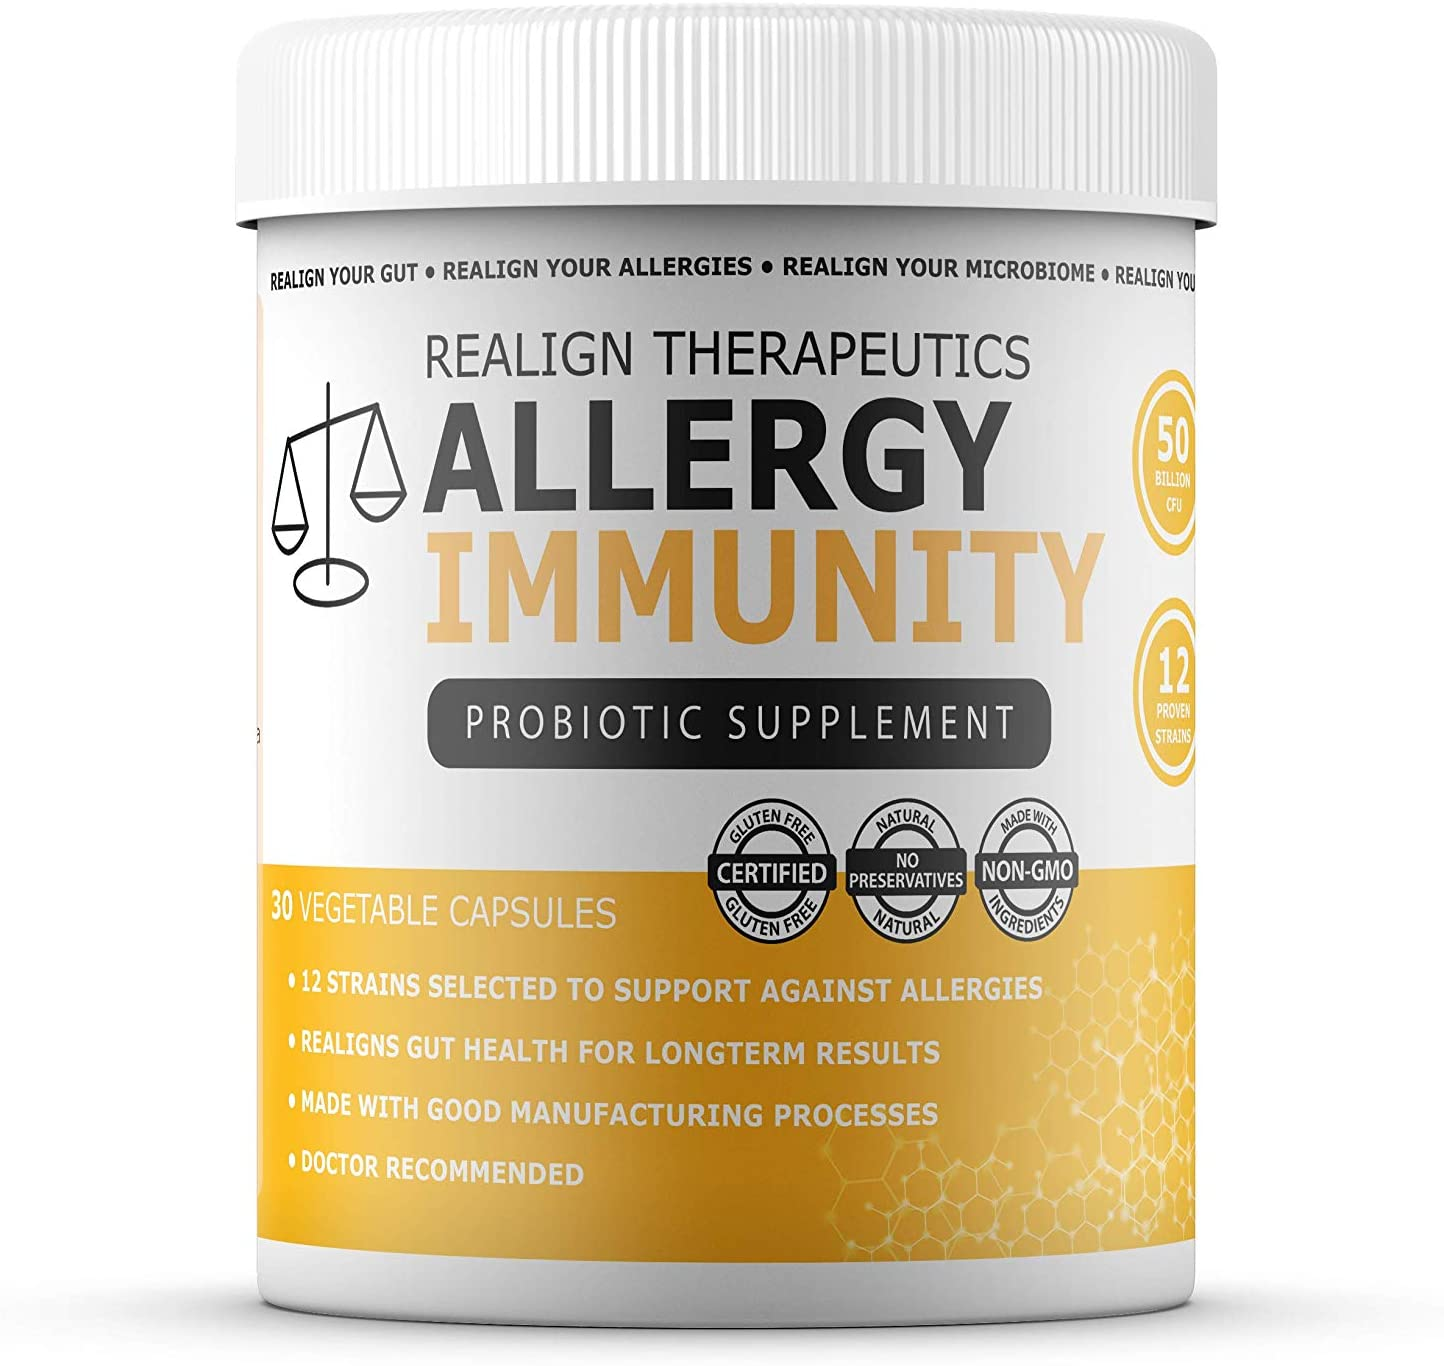 Allergy Immunity by Realign Therapeutics